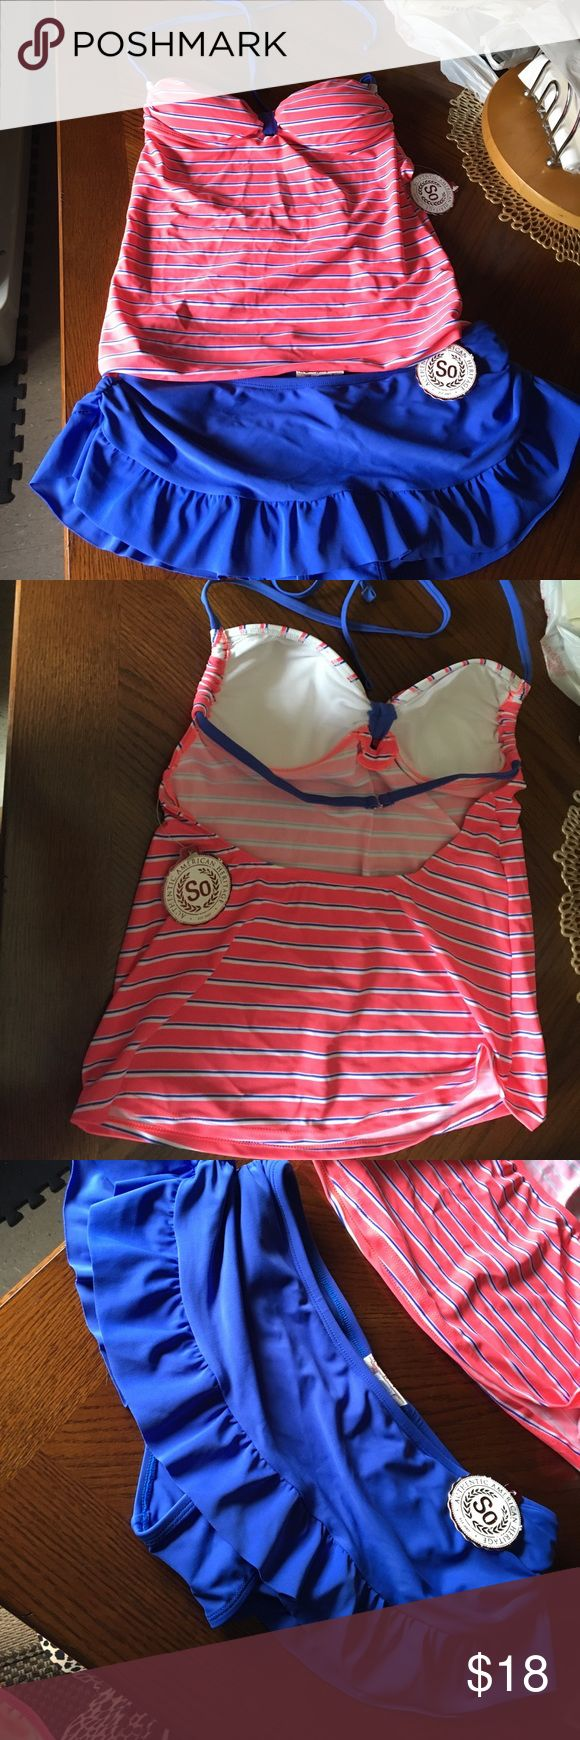 Tankini swim set NWT Brand new tankini swimsuit set. New with tags. Is a size large in juniors but fits like a regular size medium for a woman or young adult. The bottoms are like a skirt with a bikini interior. Swim Bikinis